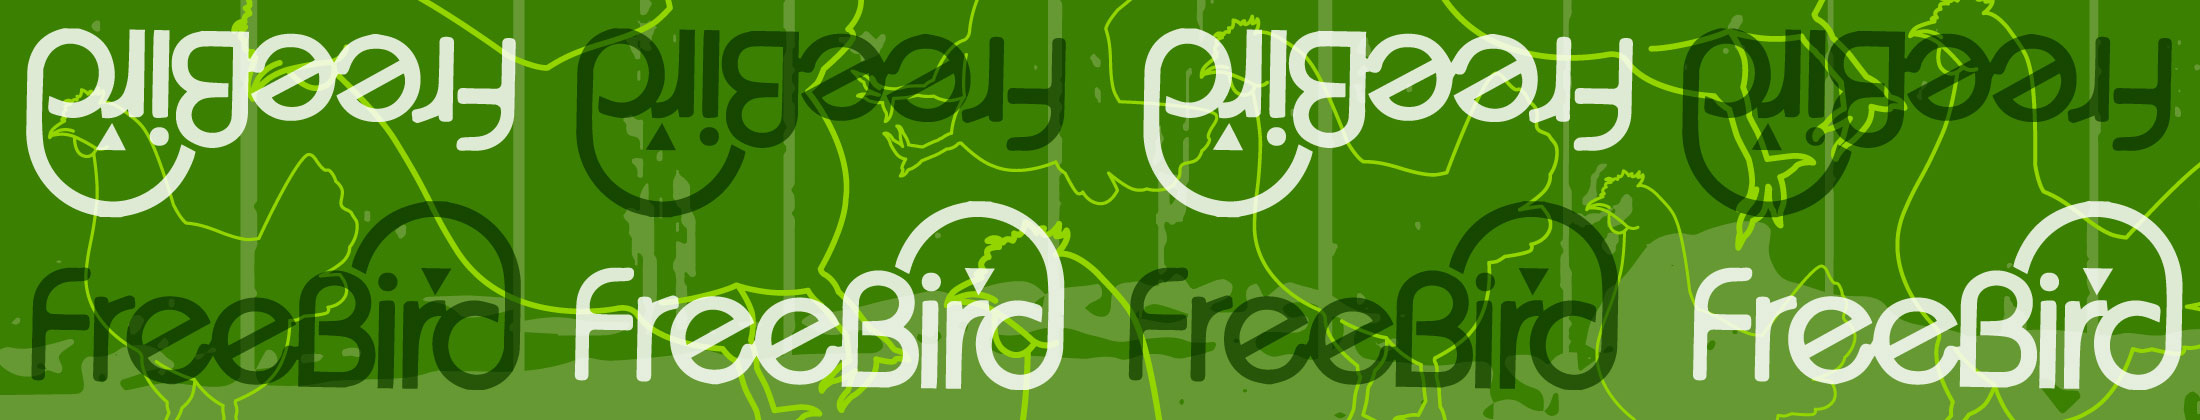 Freebird logo repeated across a green background